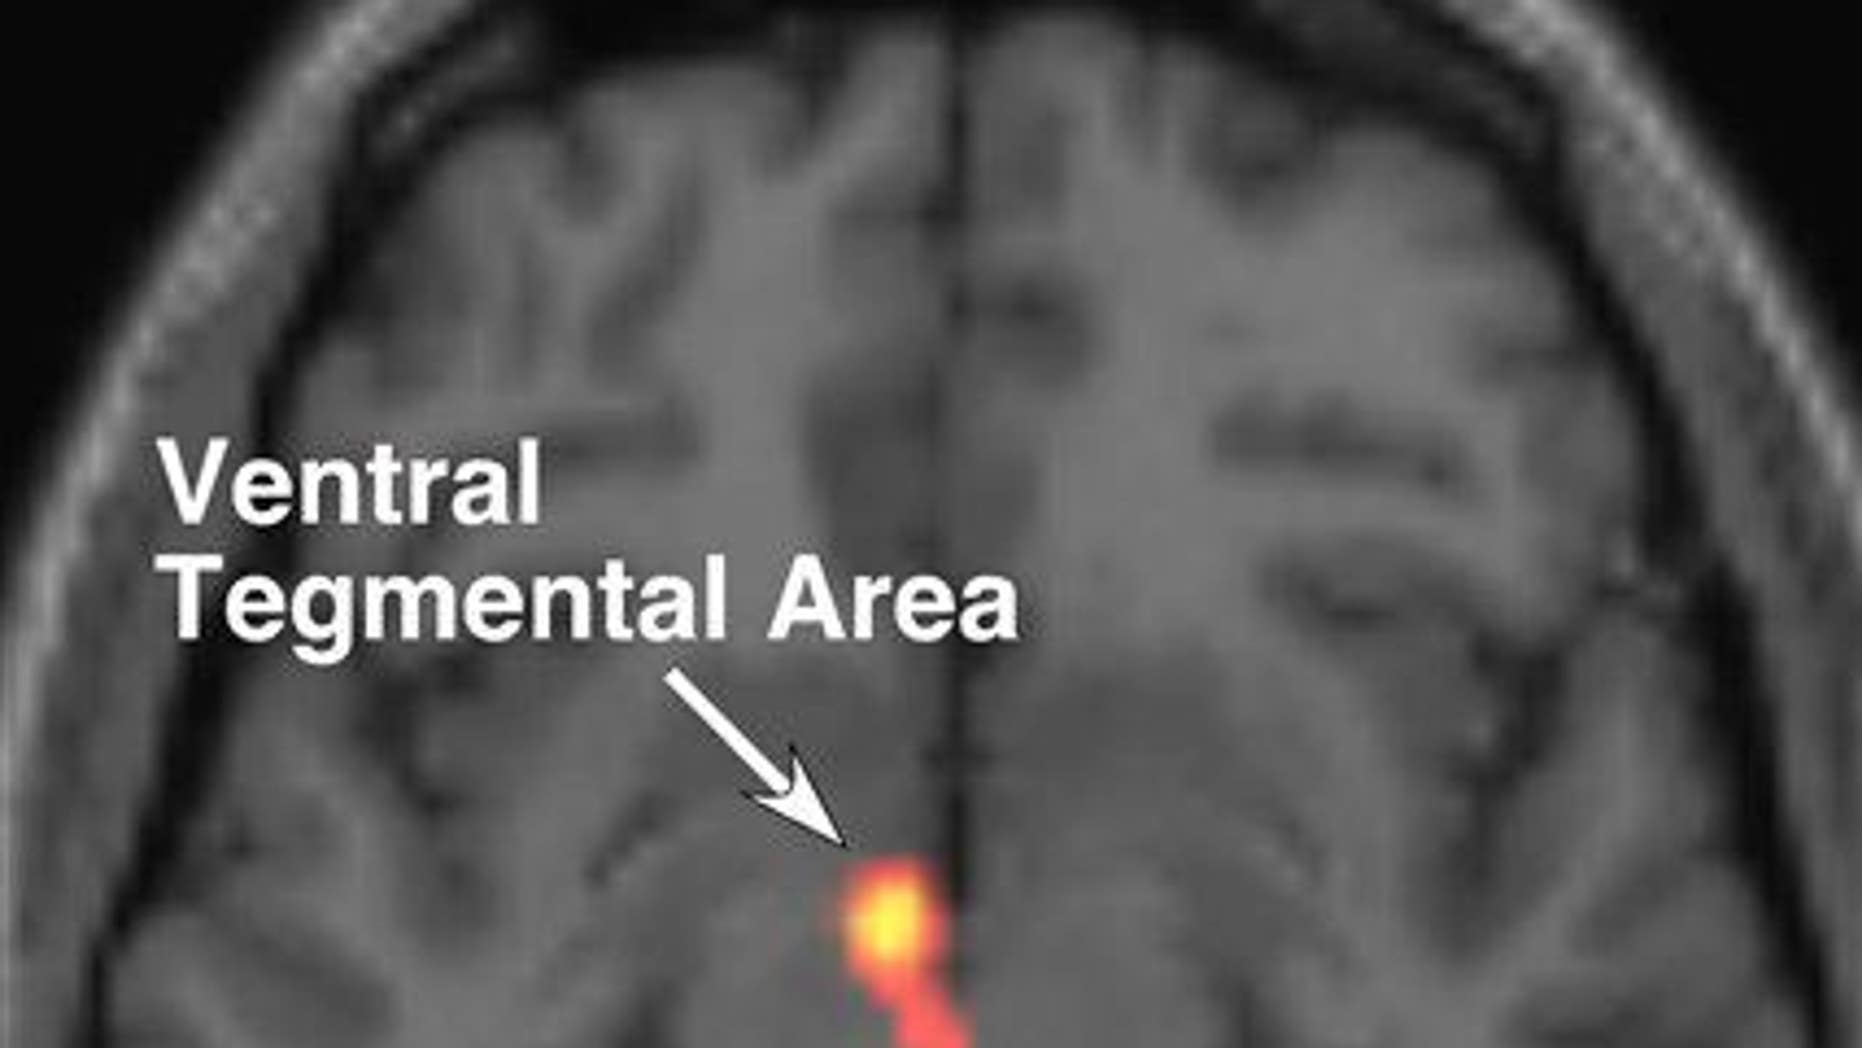 This functional magnetic resonance imaging of a brain, provided courtesy of the Albert Einstein College of Medicine, shows activity in the ventral tegmental area (VTA).